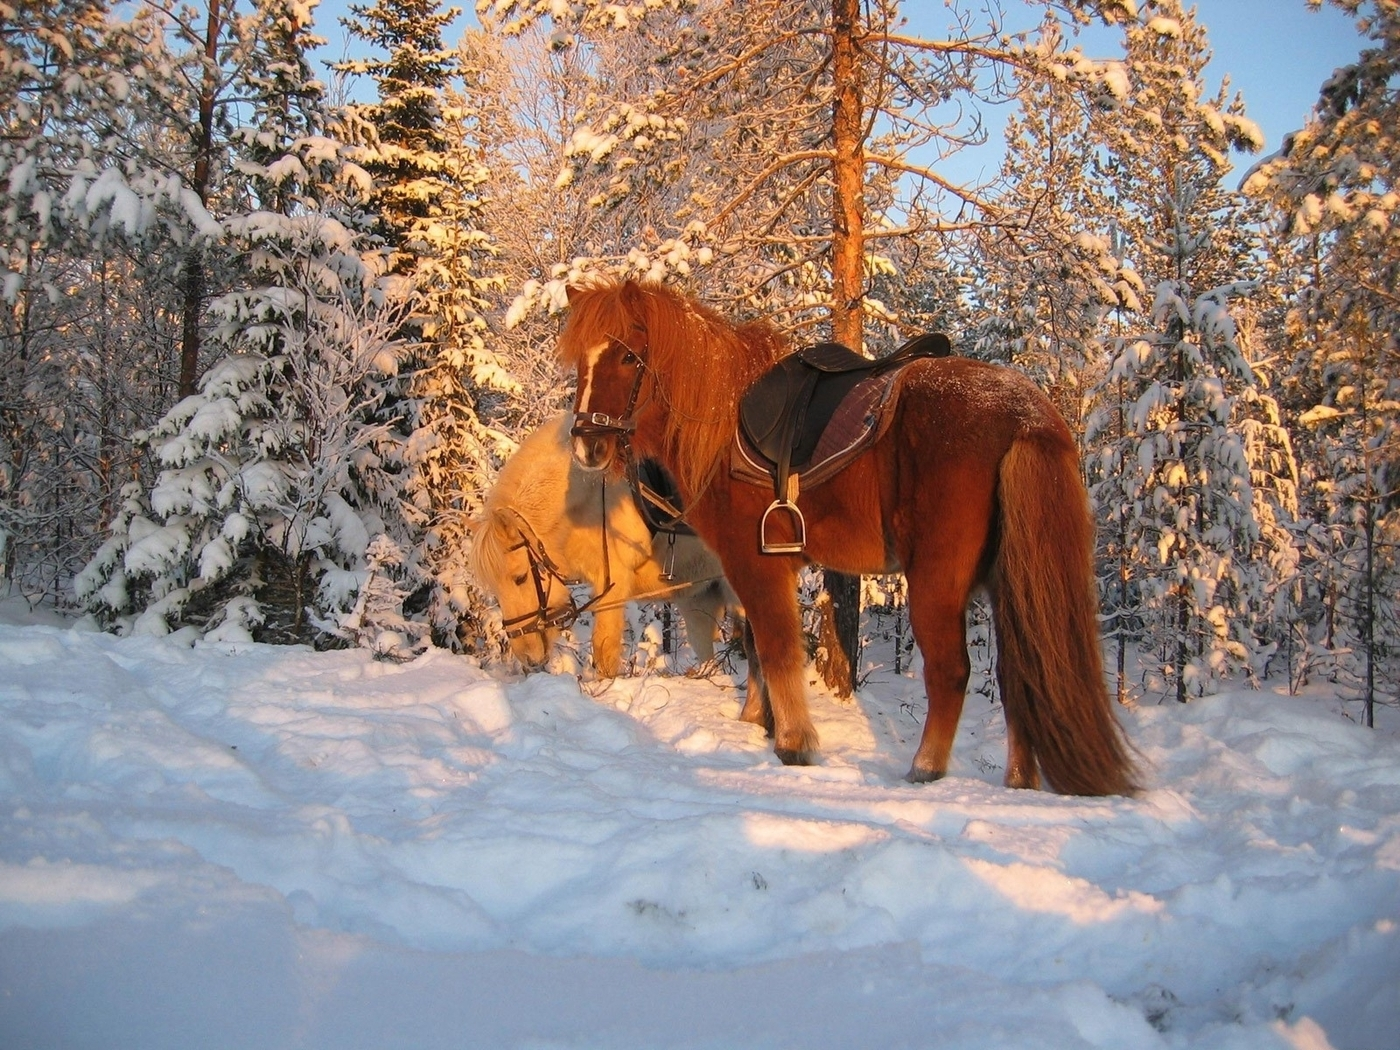 45763 download wallpaper Animals, Winter, Horses, Snow screensavers and pictures for free